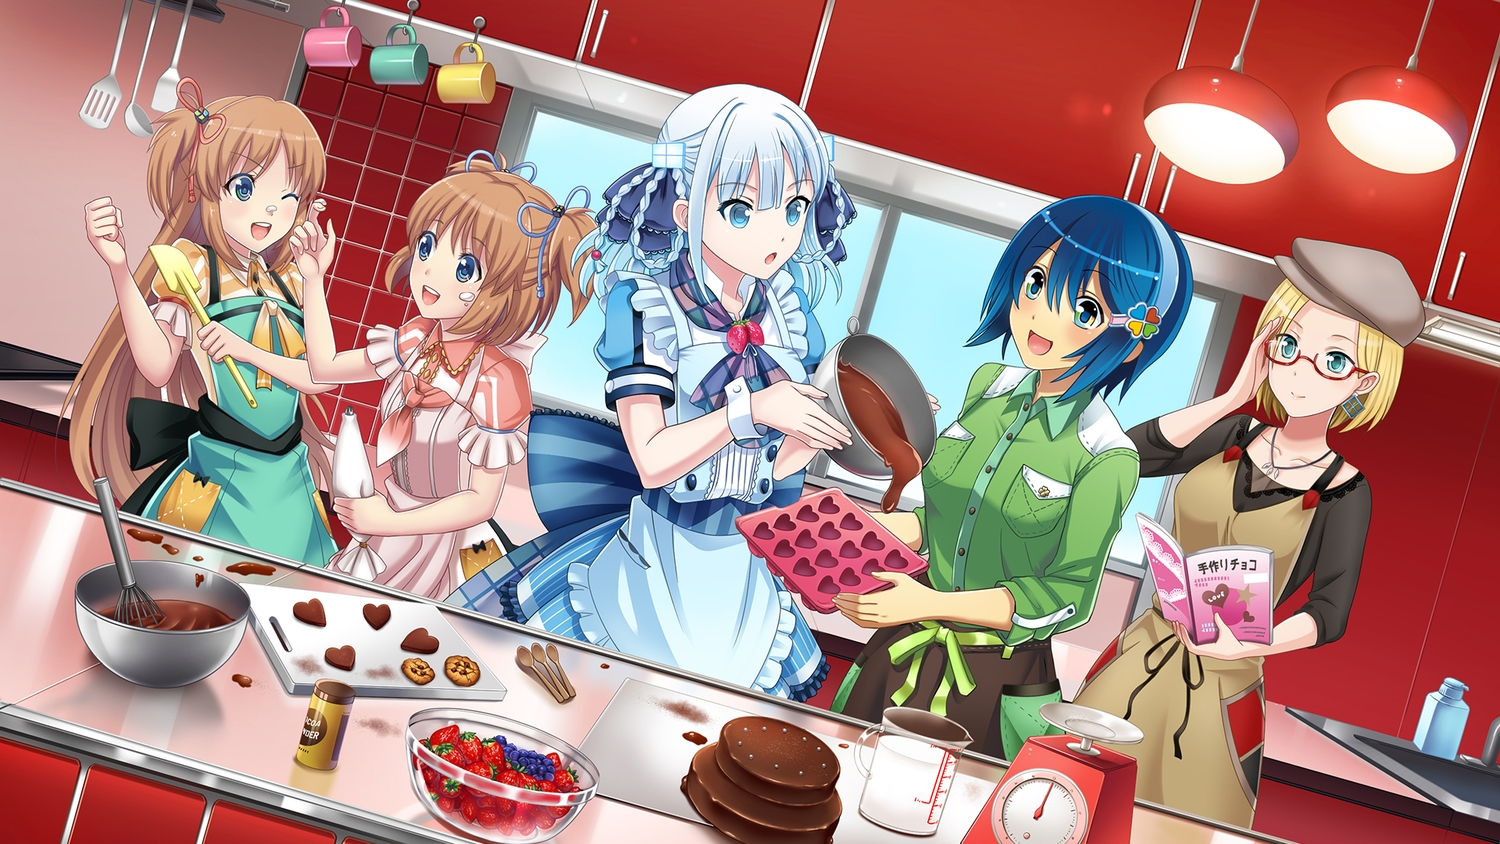 apron aqua_eyes blonde_hair blue_hair book brown_hair candy chocolate claudia_madobe food fruit glasses green_eyes group hat headband long_hair madobe_ai madobe_nanami madobe_touko madobe_yuu maid microsoft os-tan ponytail short_hair strawberry tagme_(artist) twins twintails valentine white_hair windows